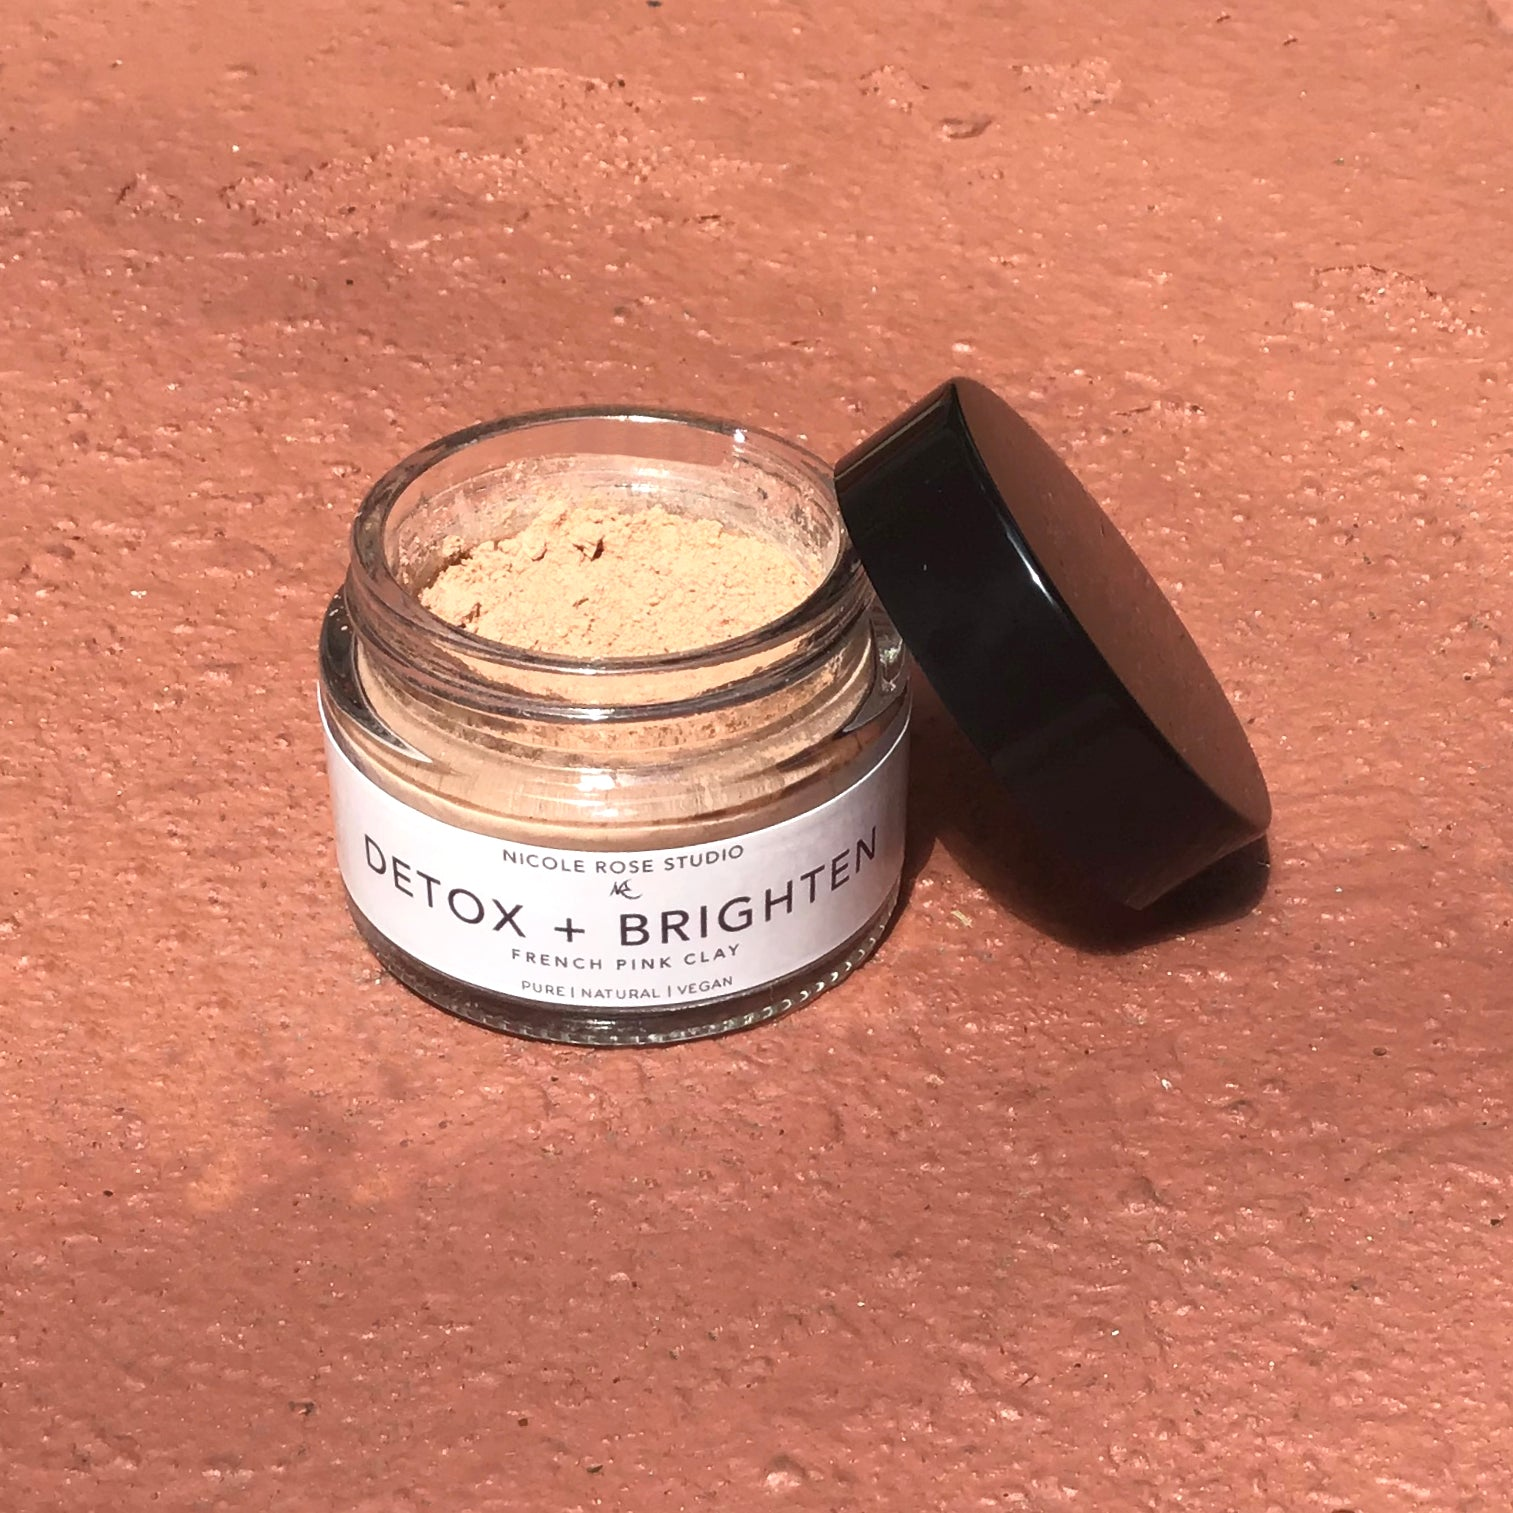 Detox + Brighten French Pink Clay Mask | RitualElement